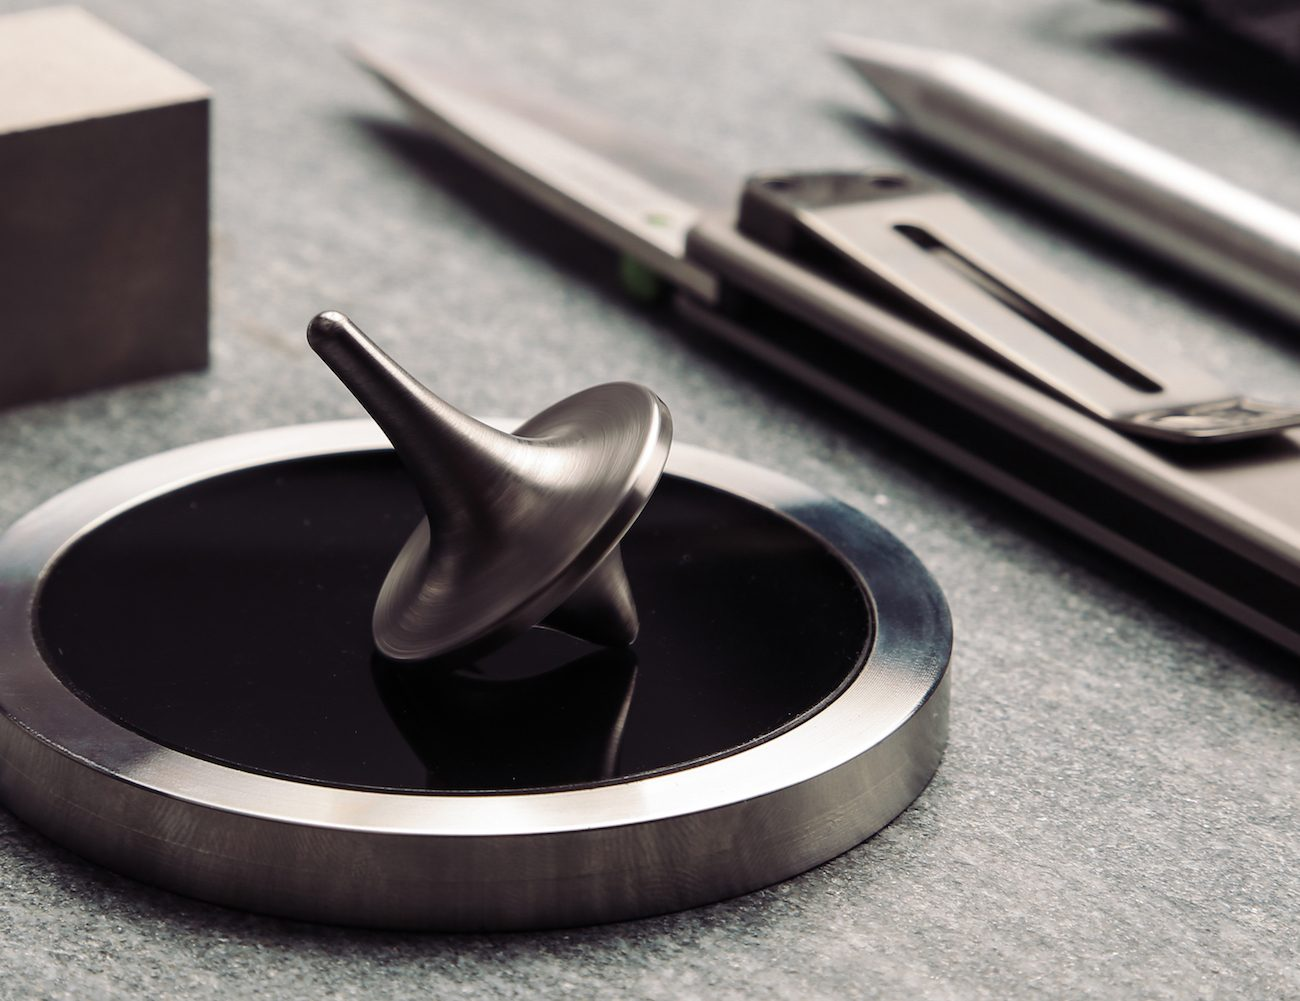 ForeverSpin Metal Spinning Tops